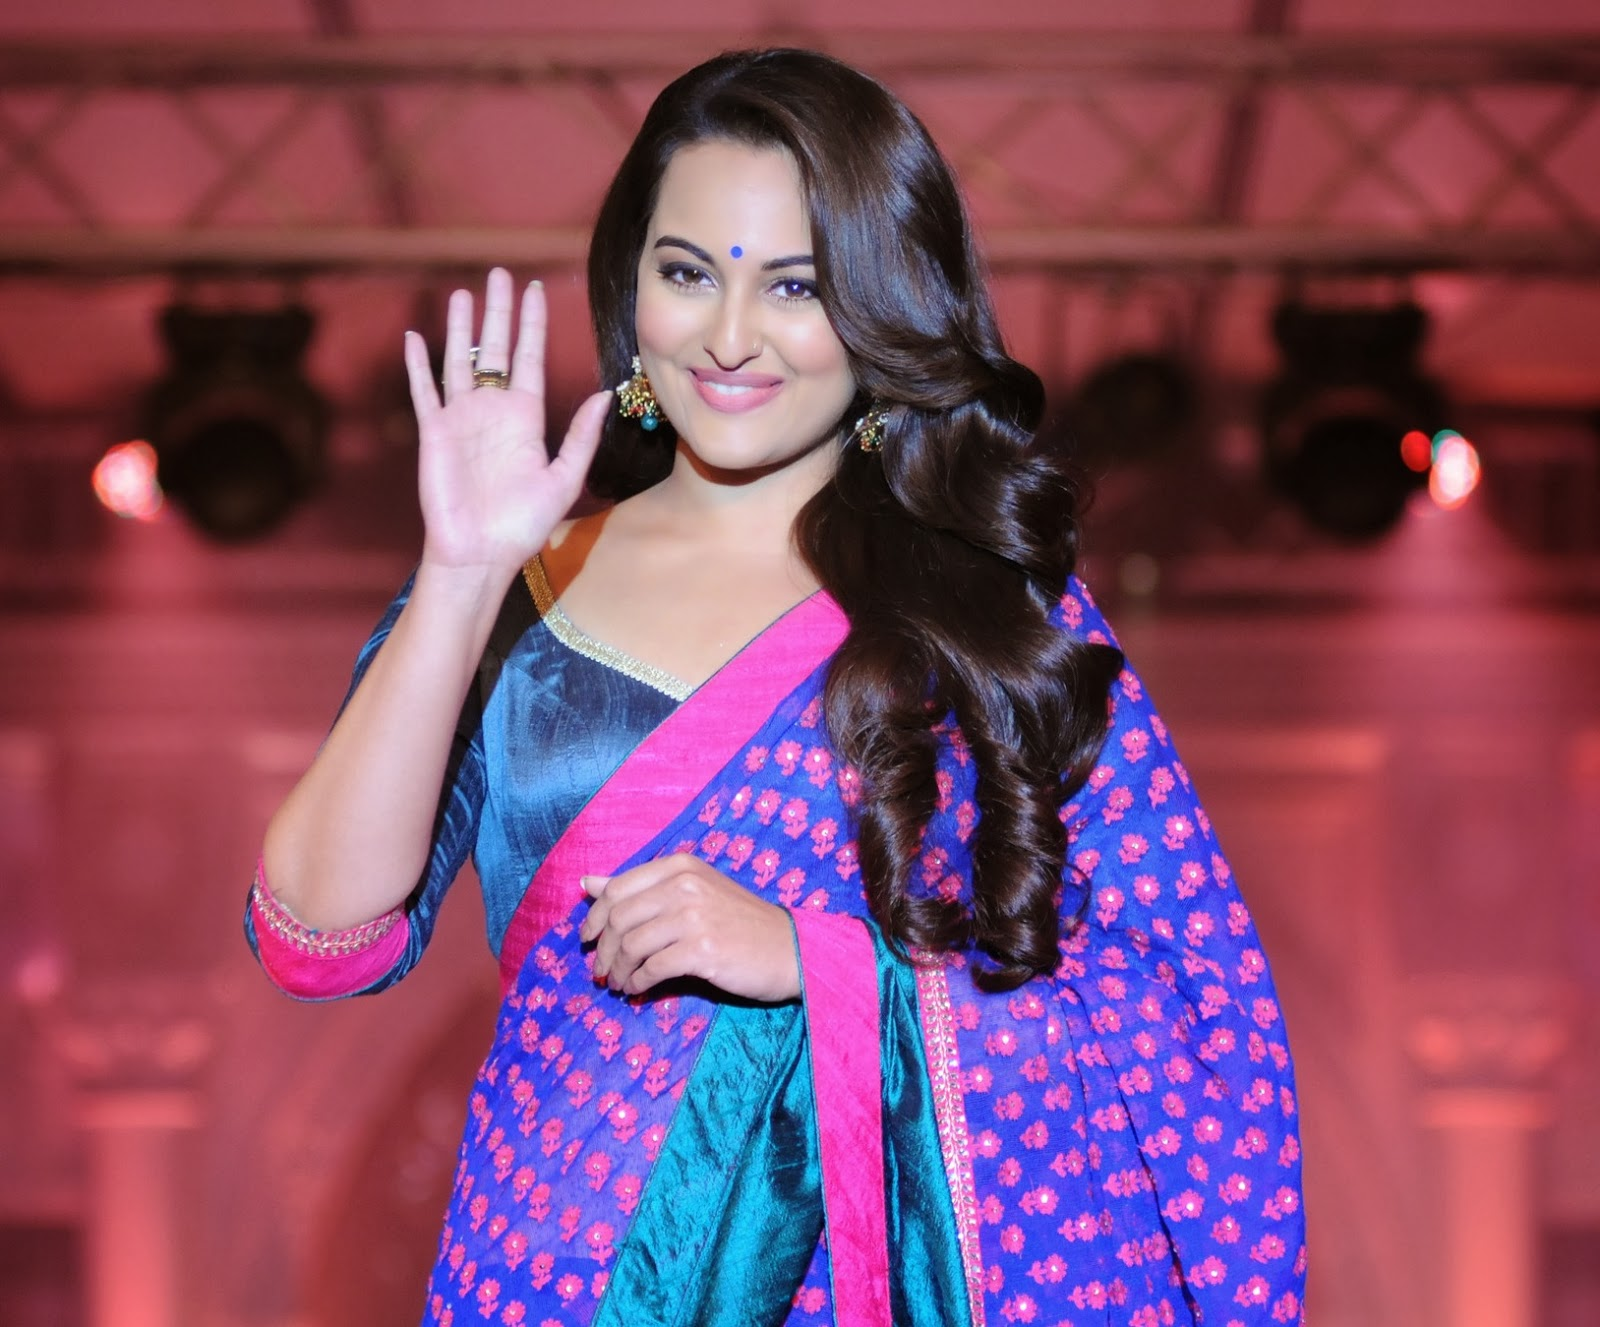 Sonakshi Sinha Hd Wallpapers: 12 HD Sonakshi Sinha Wallpapers